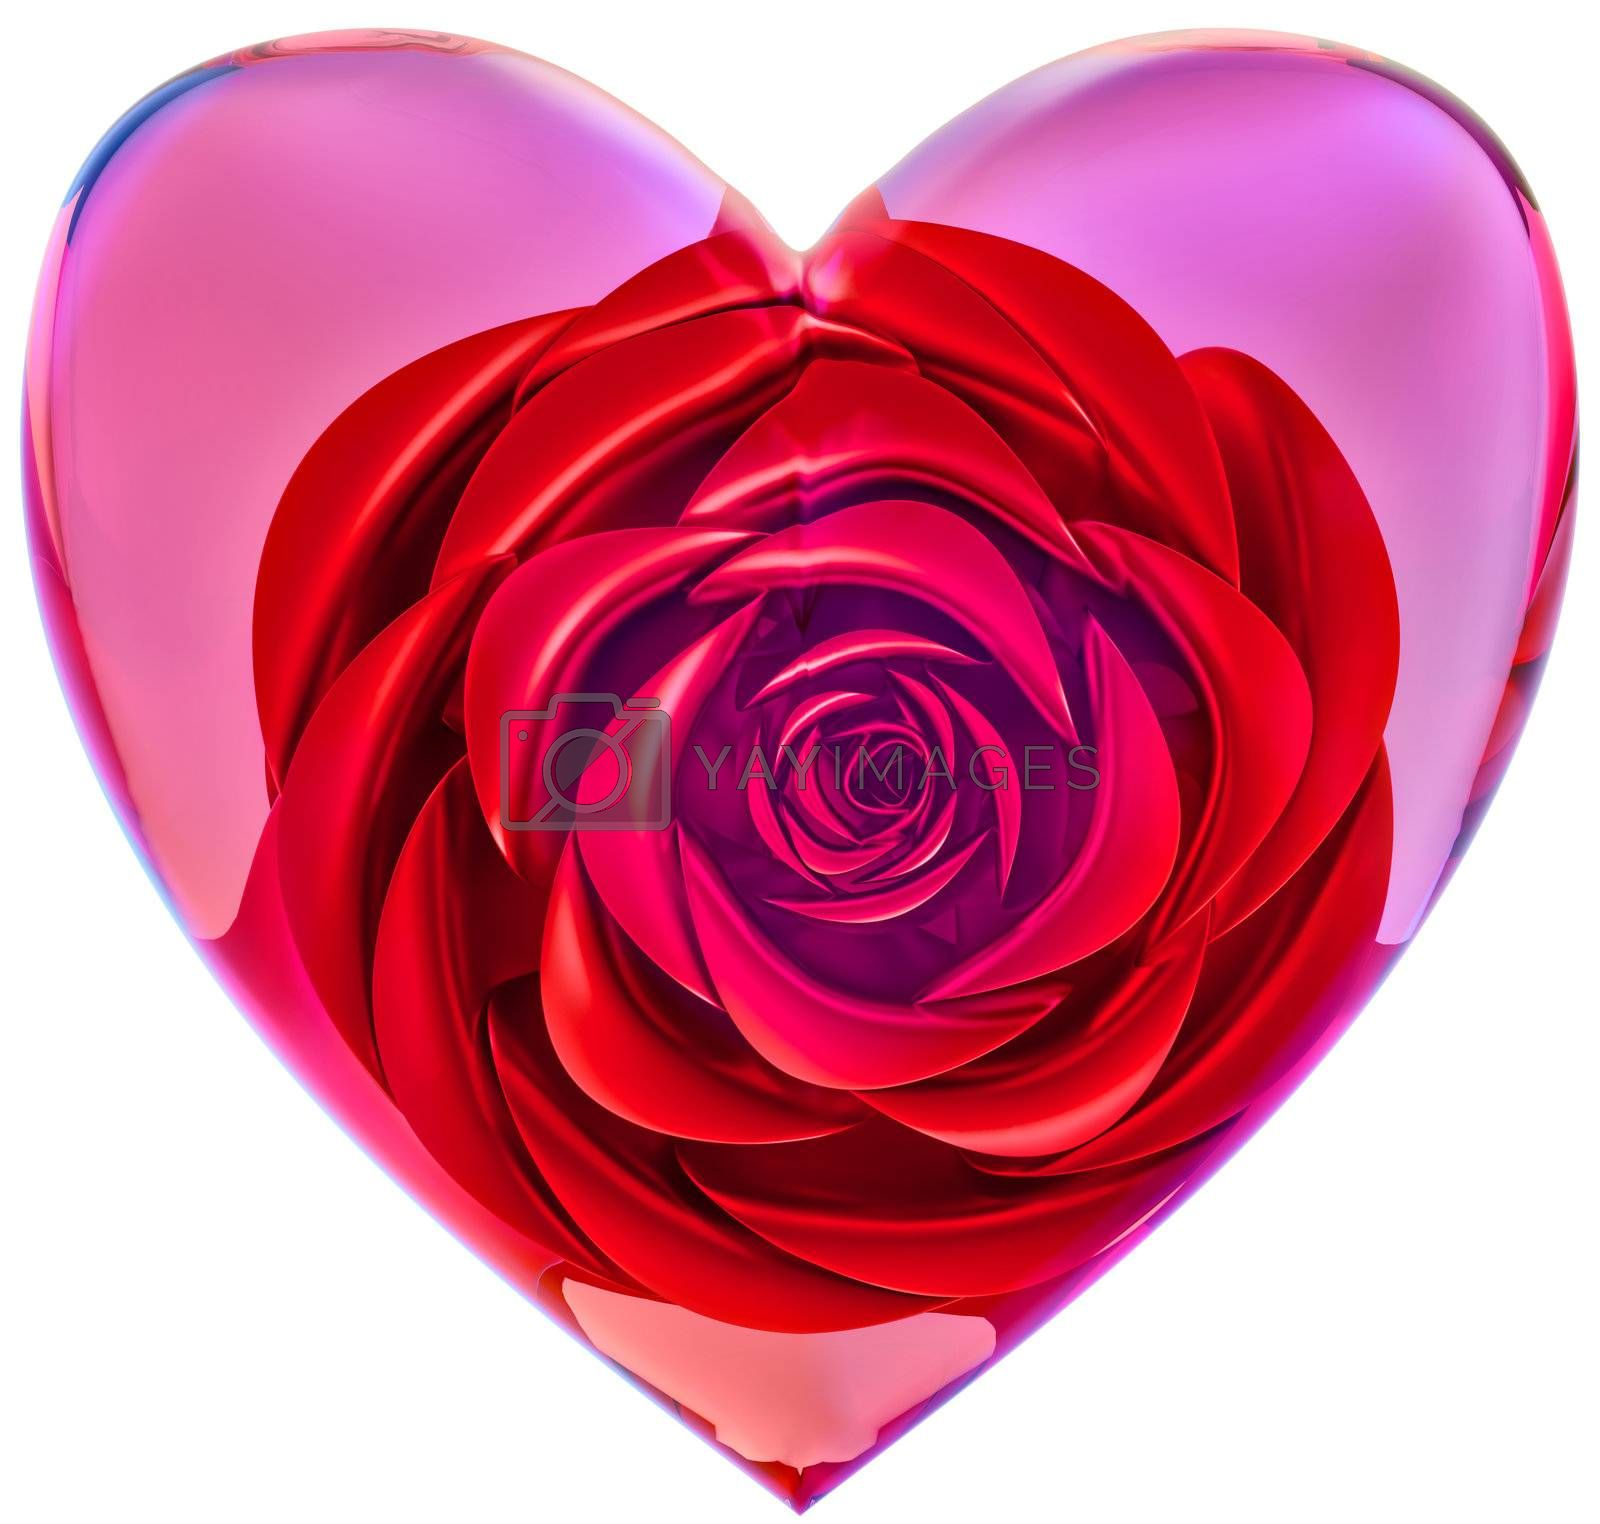 beautiful red rose in glass heart as decoration for celebration of Valentine's Day